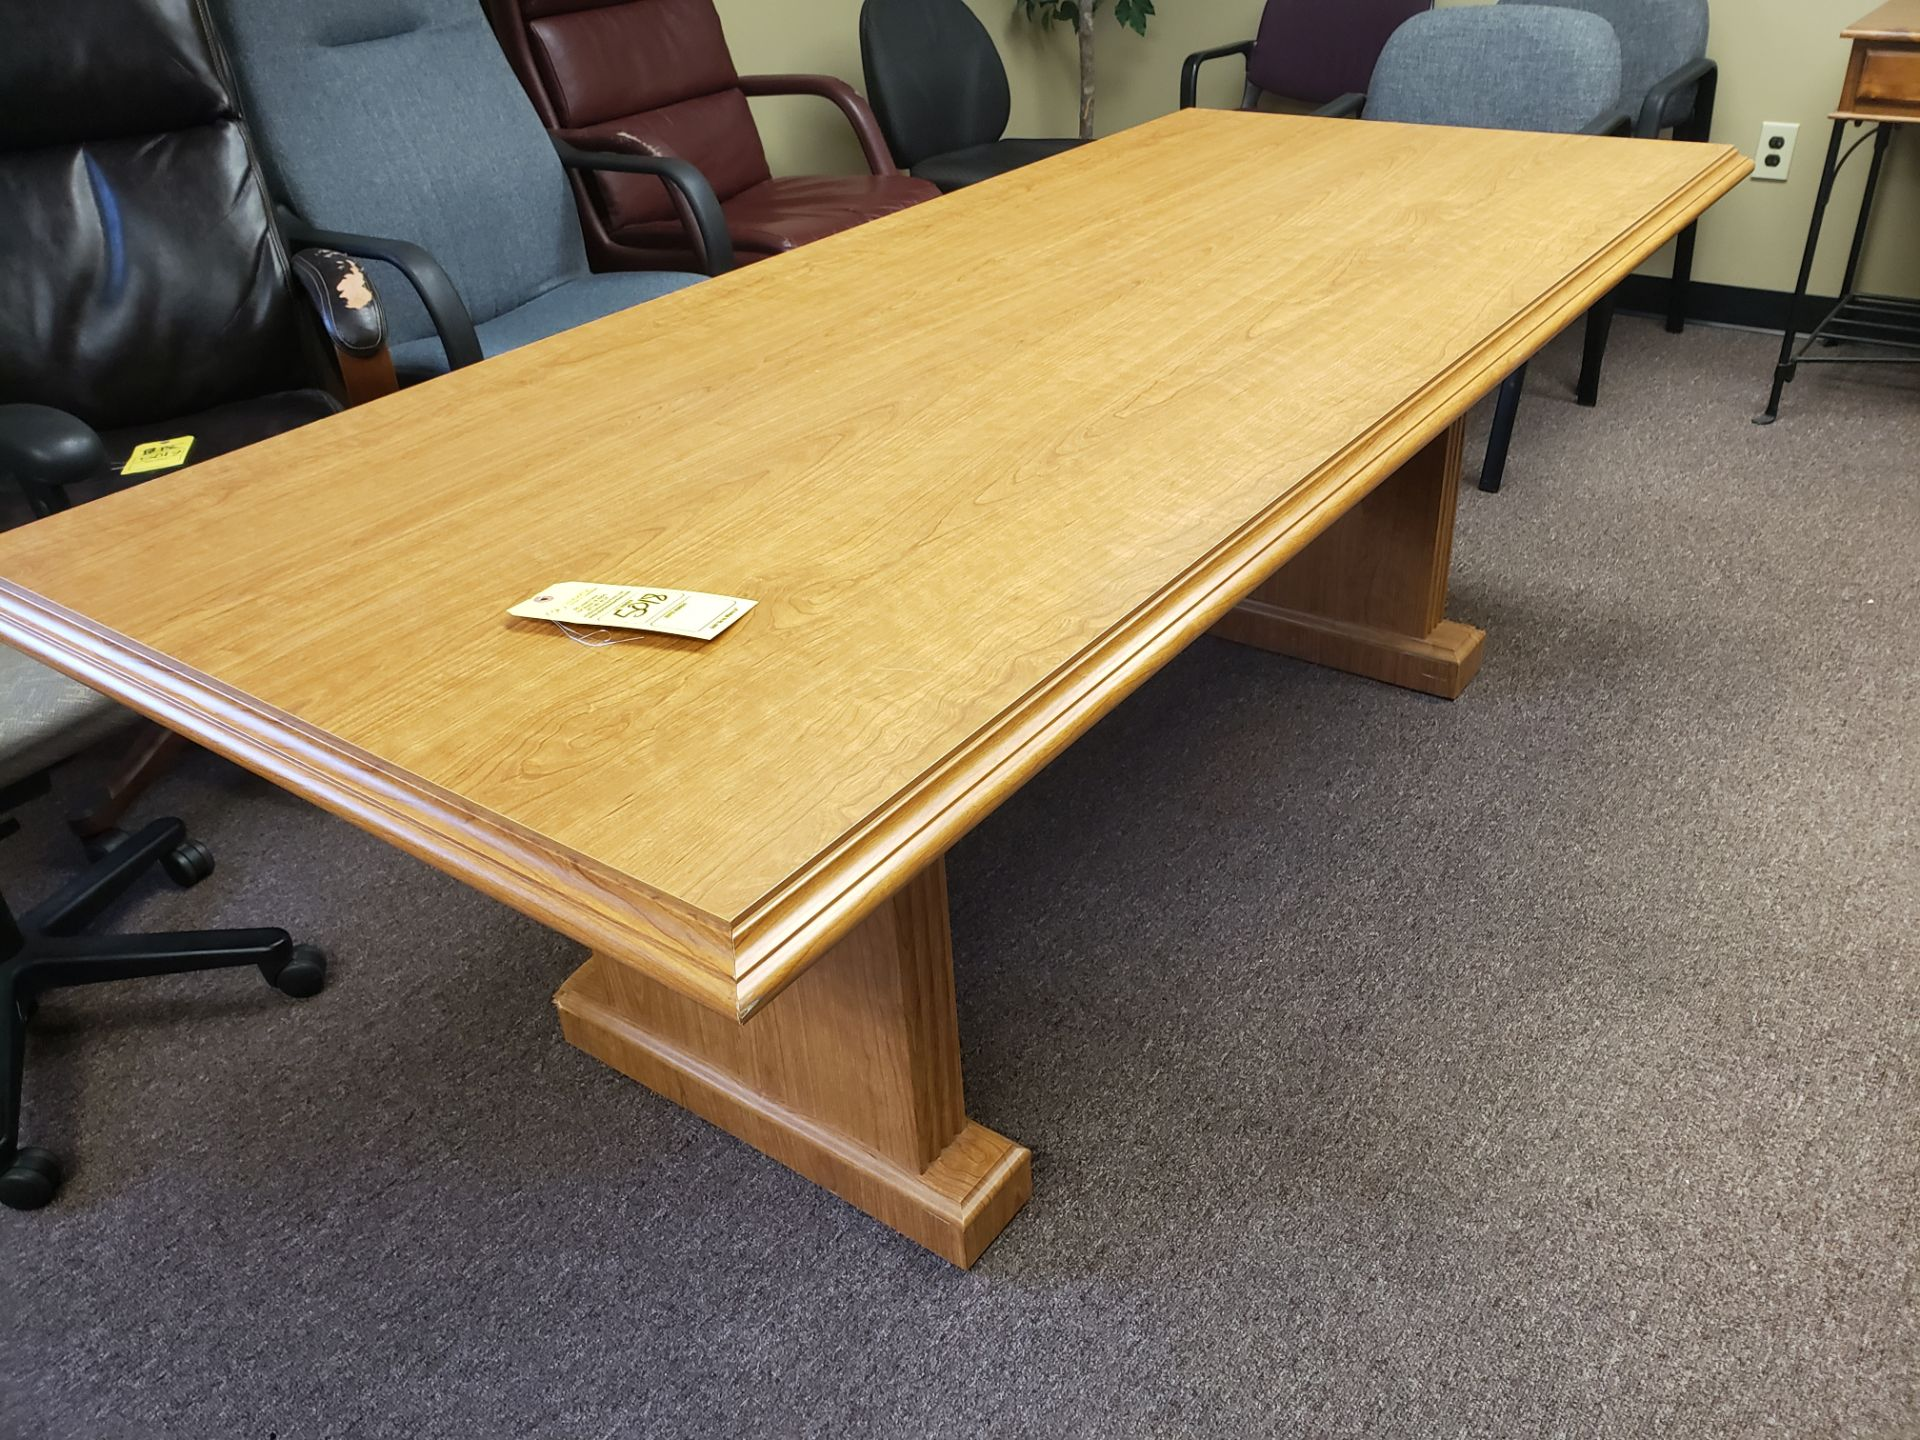 Lot 5018 - CONFERENCE TABLE (LOCATED AT: 16335 LIMA ROAD BLDG. 4 HUNTERTOWN, IN 46748)